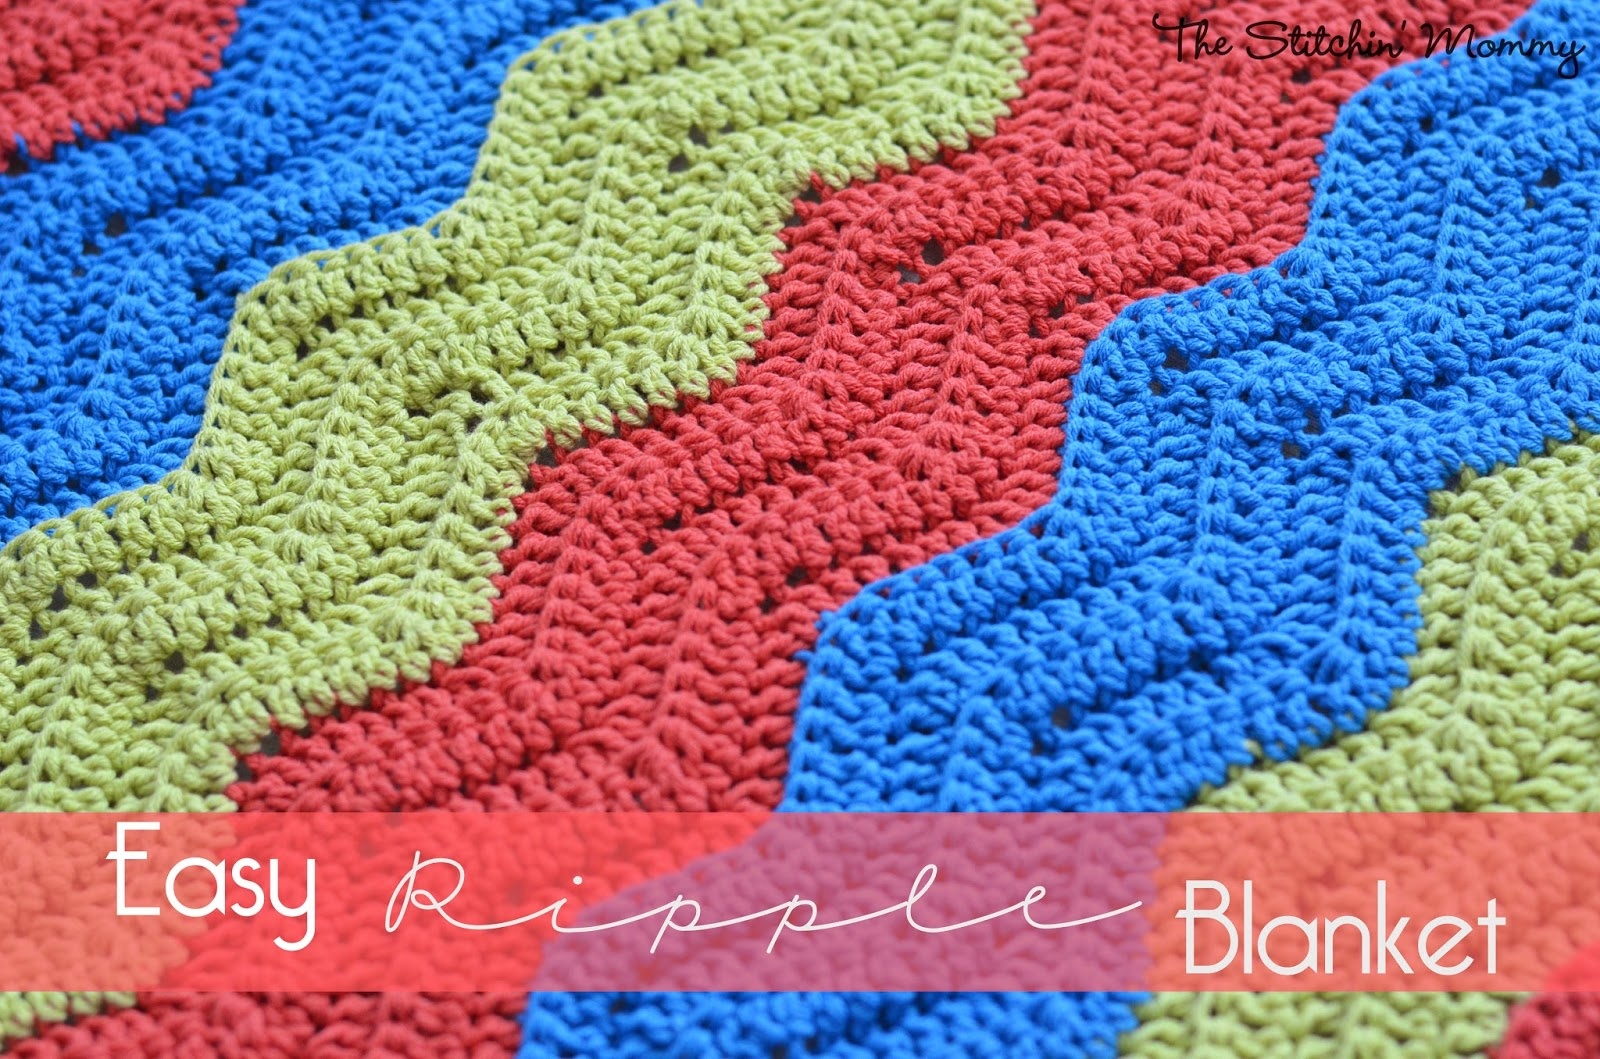 Easy Crochet Ripple Blanket - The Stitchin Mommy